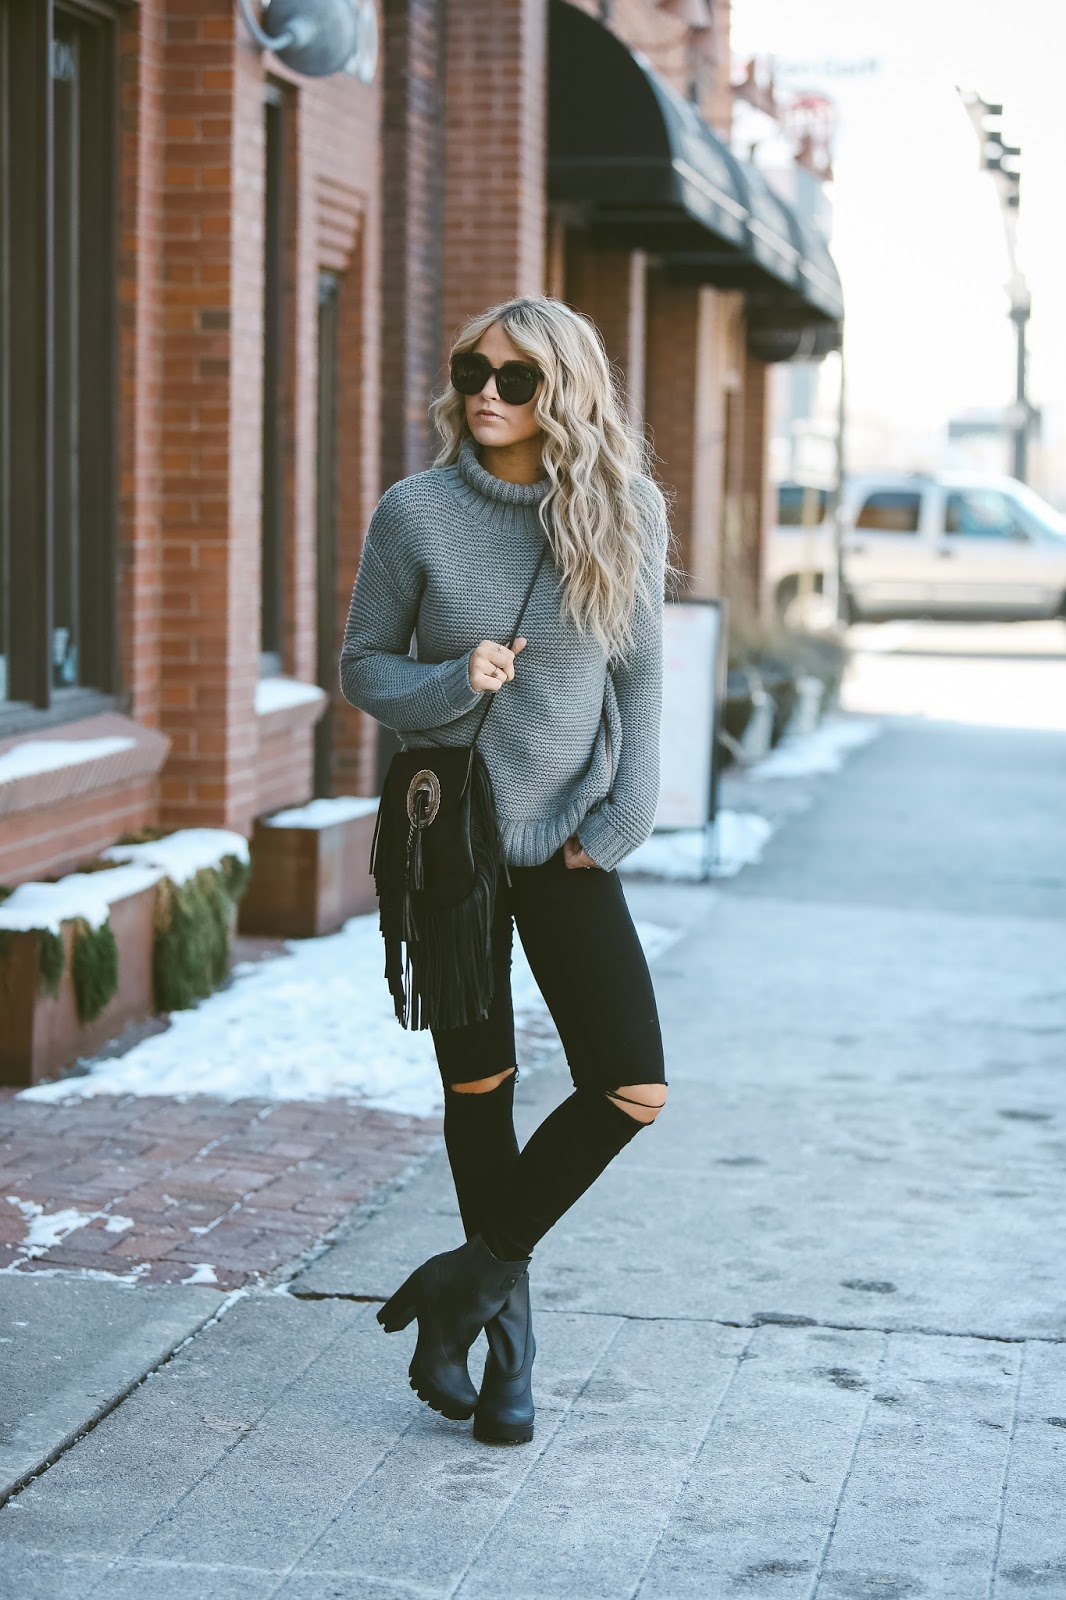 Wearing a knitted turtleneck sweater with jeans will always make for a cosy and chilled out vibe. Cara Loren wears the look with chunky platform ankle boots and a tasselled cross body bag; an easy and funky style. Sweater: Lululemon, Jeans: Urban Outfitters, Shoes: Shopbop.